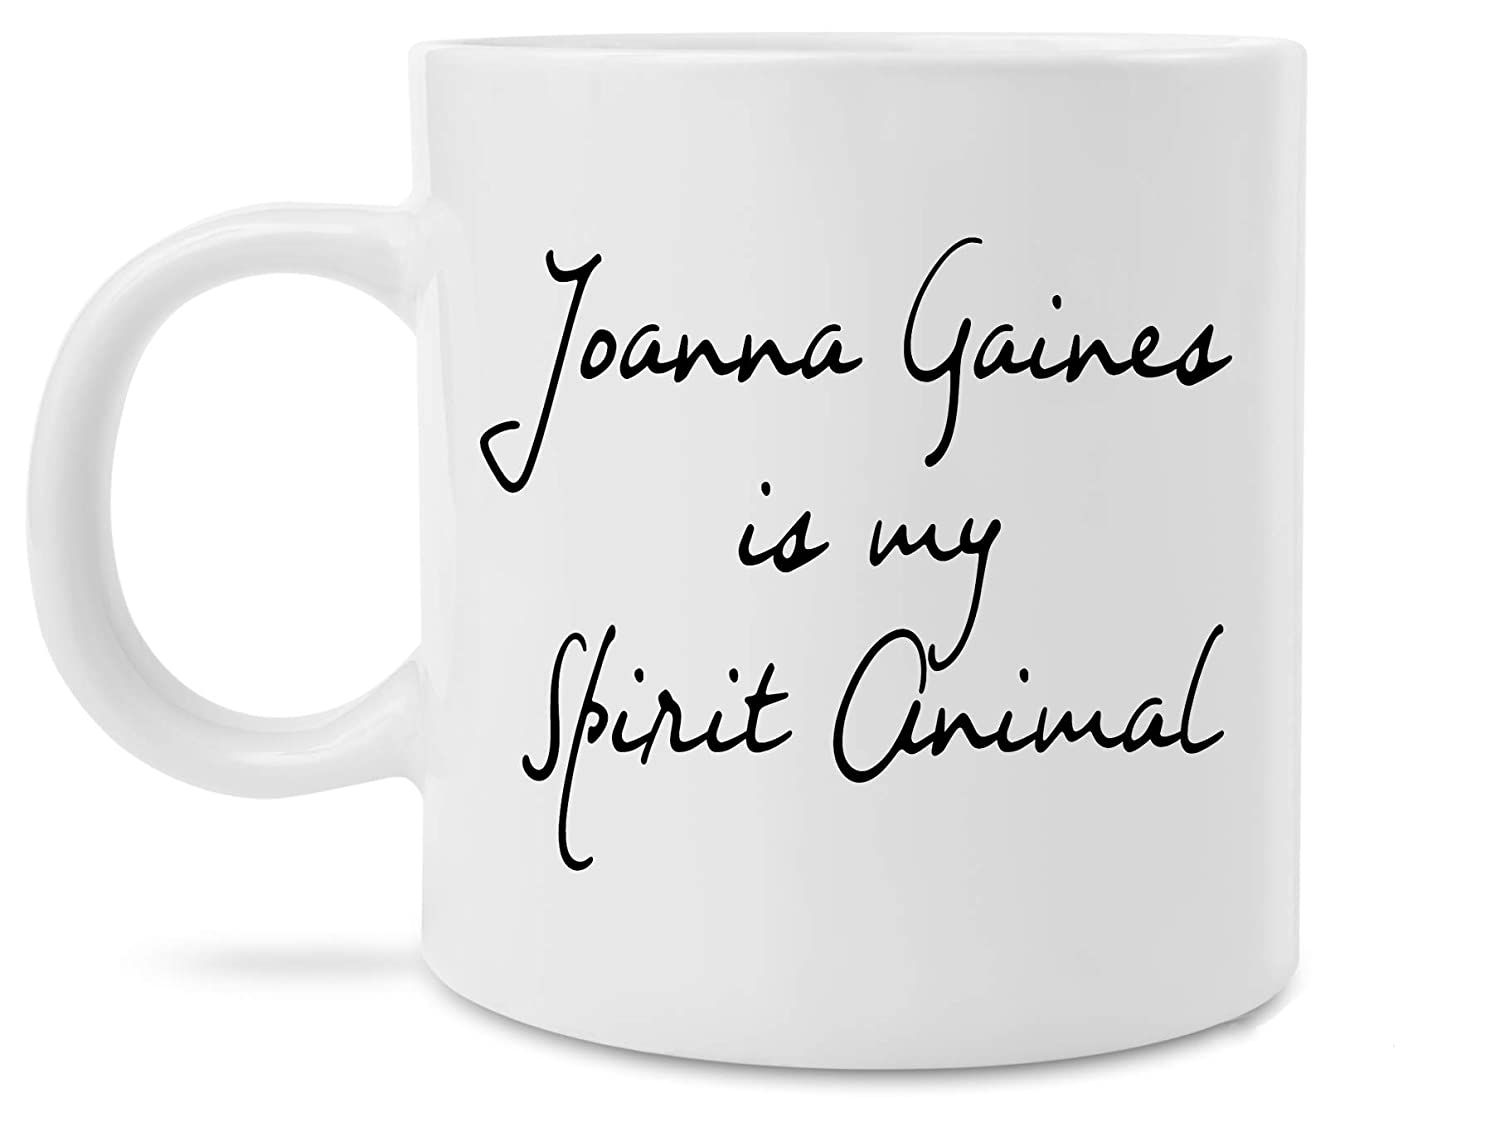 Funny Joanna Gaines is my Spirit Animal Coffee Mug Novelty Fixer Upper Gift